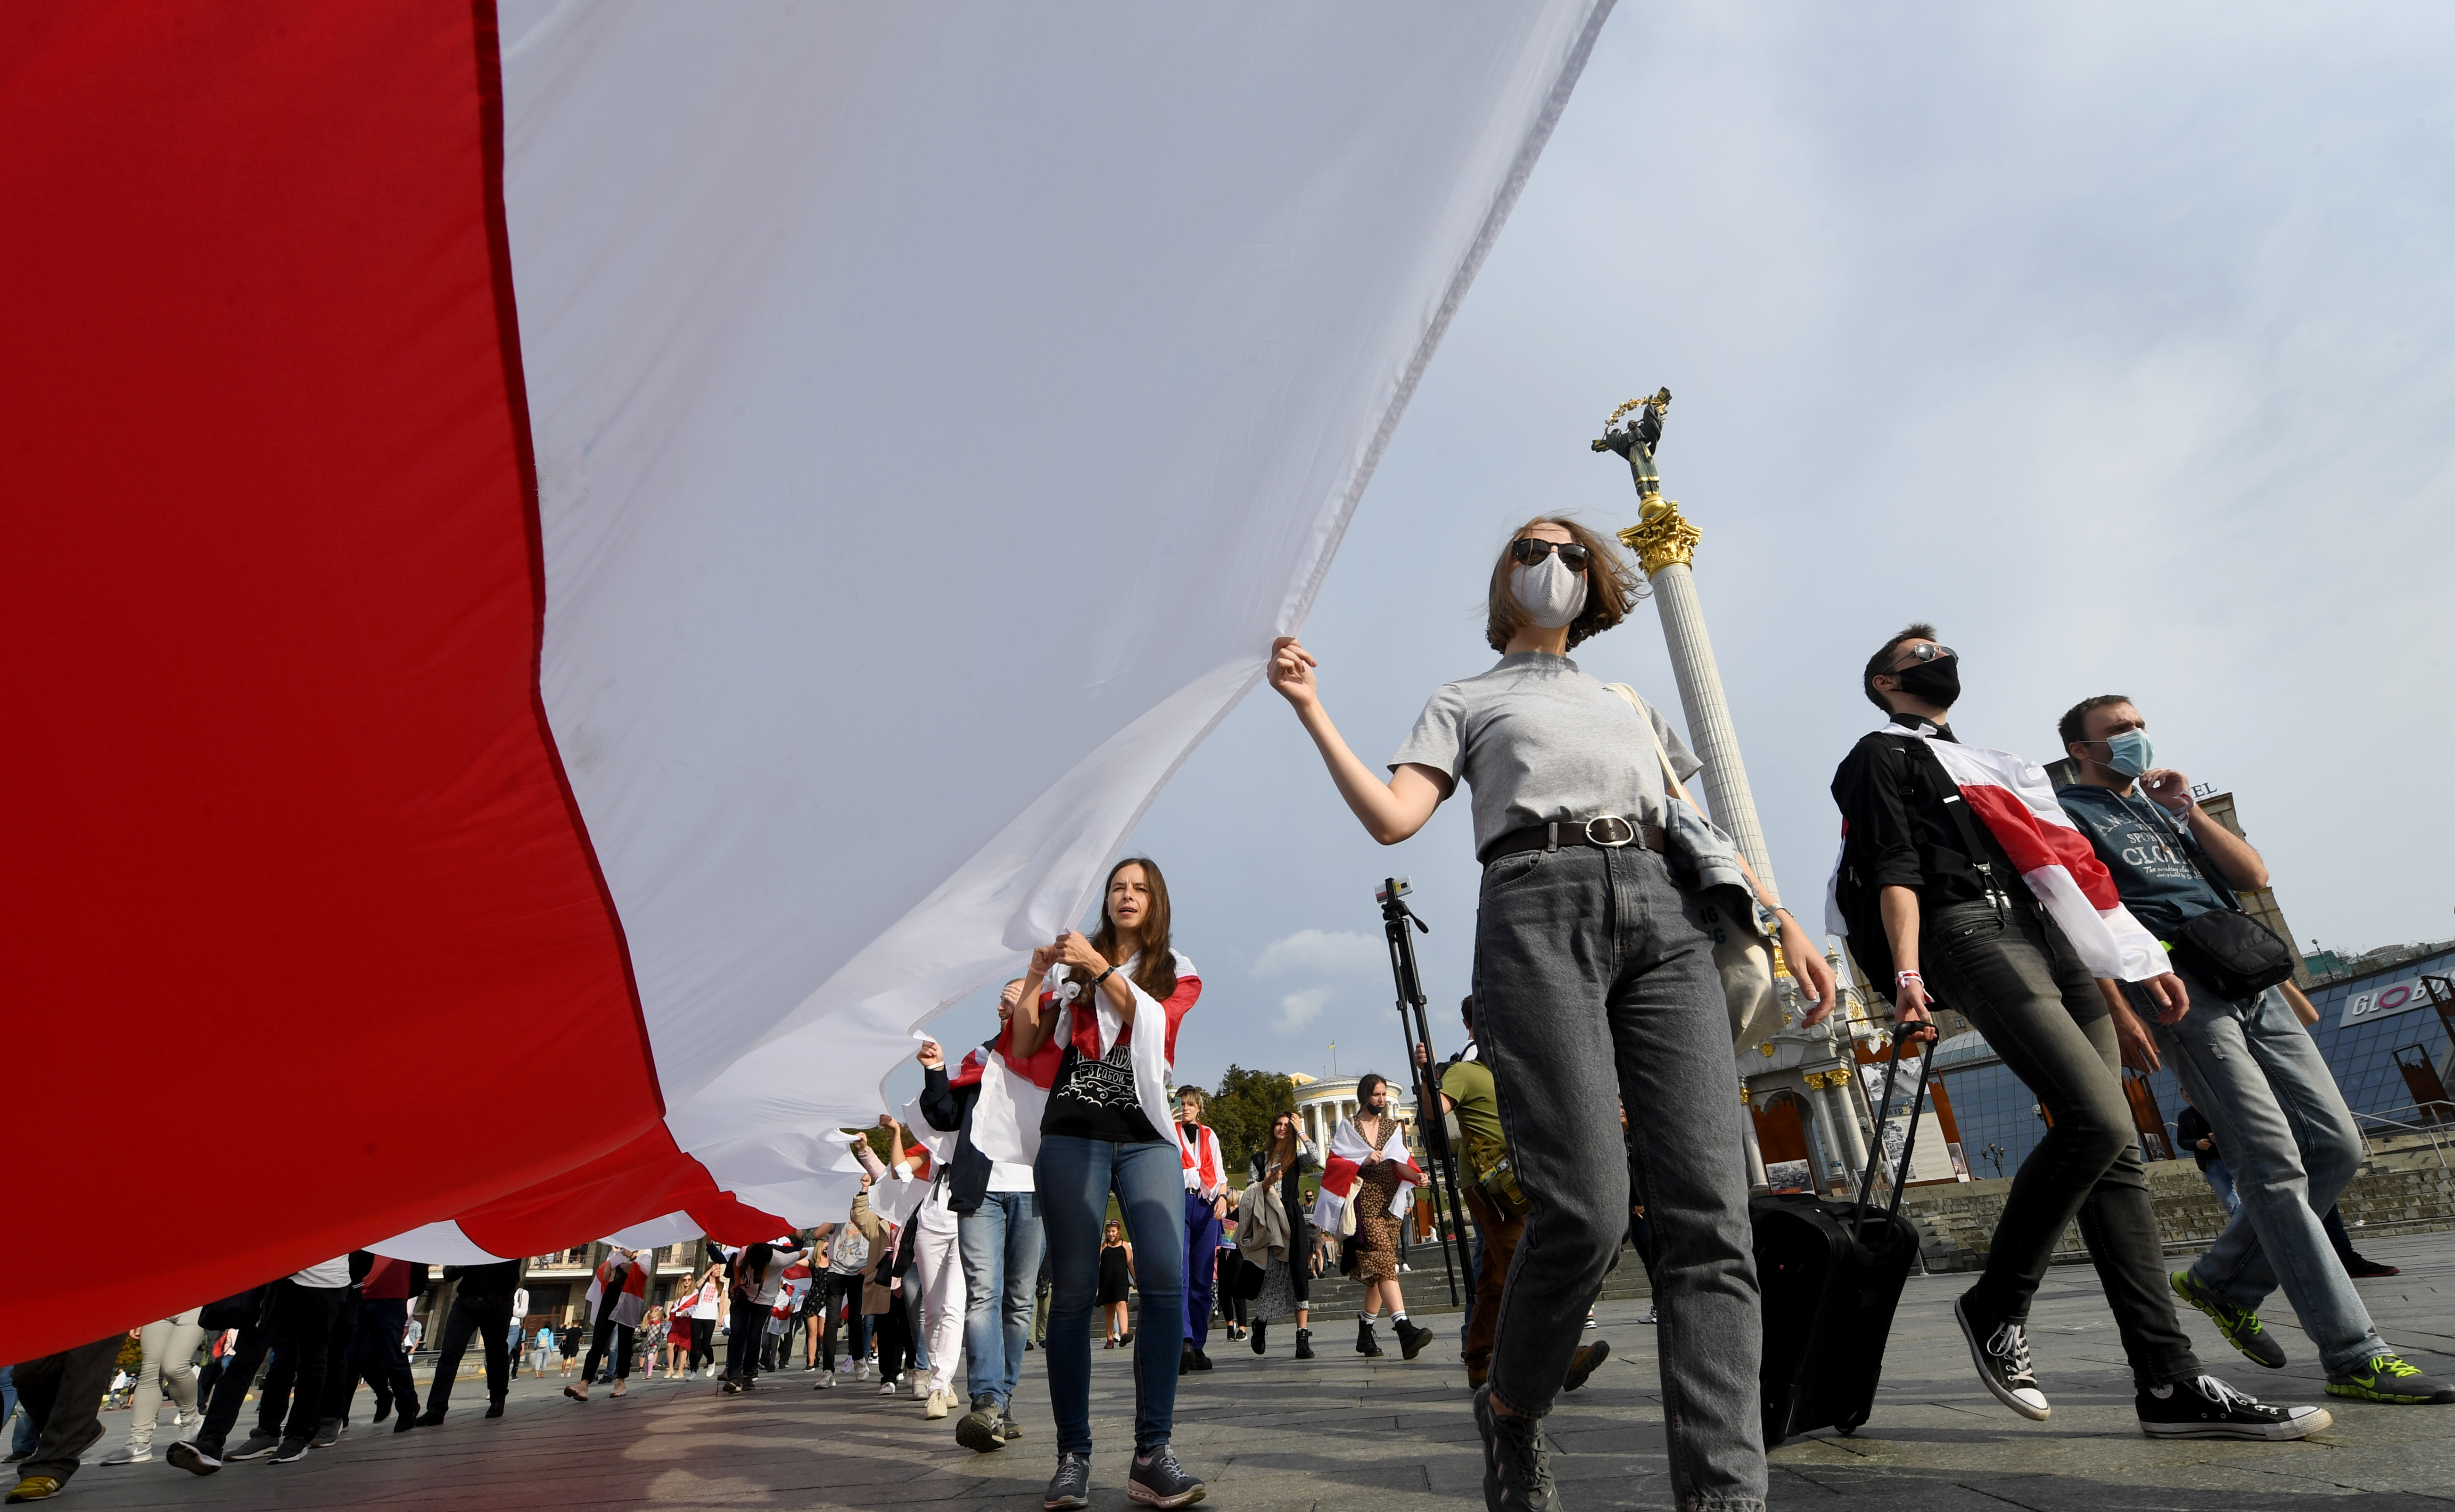 Rights group: Scores detained during protests in Belarus